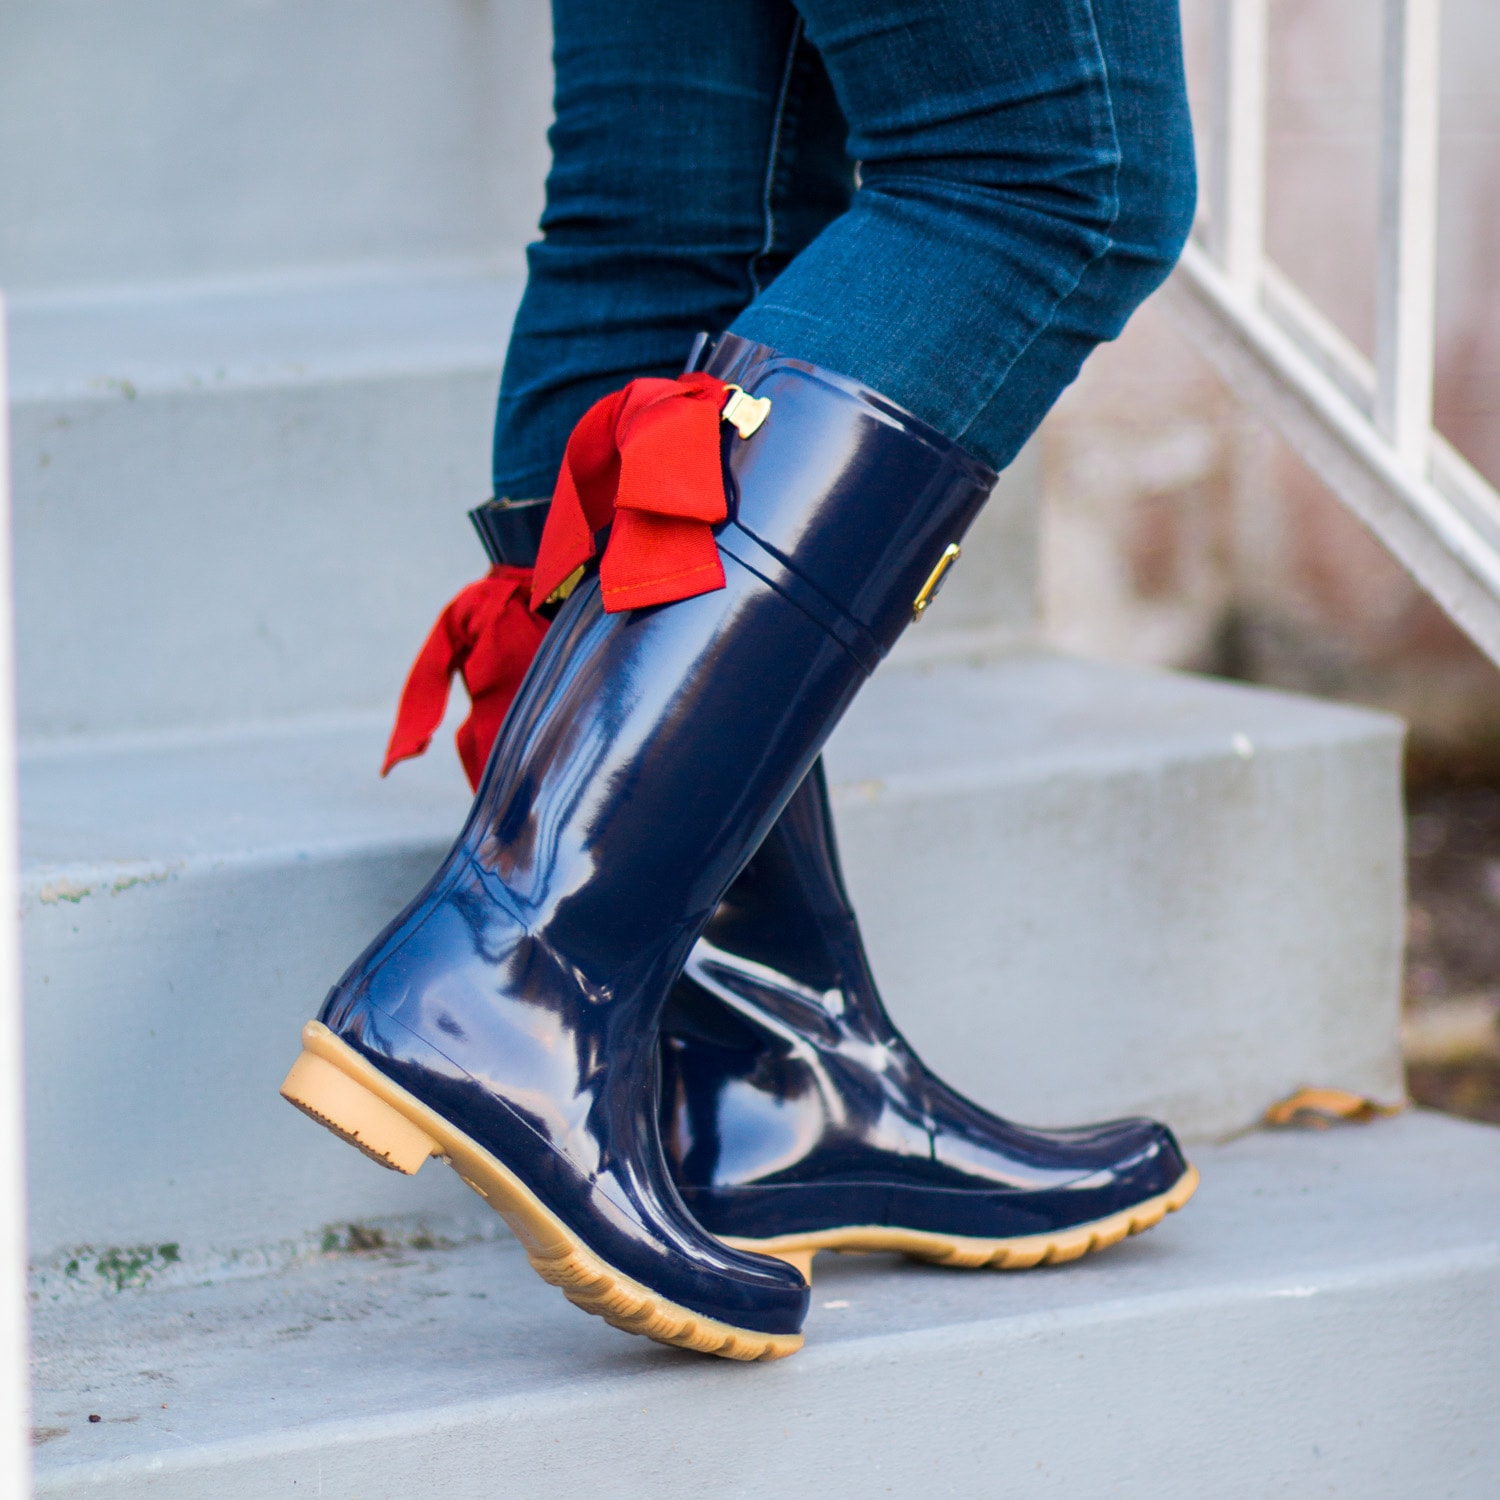 joules-evedon-rainboots-navy-red-bow-6573